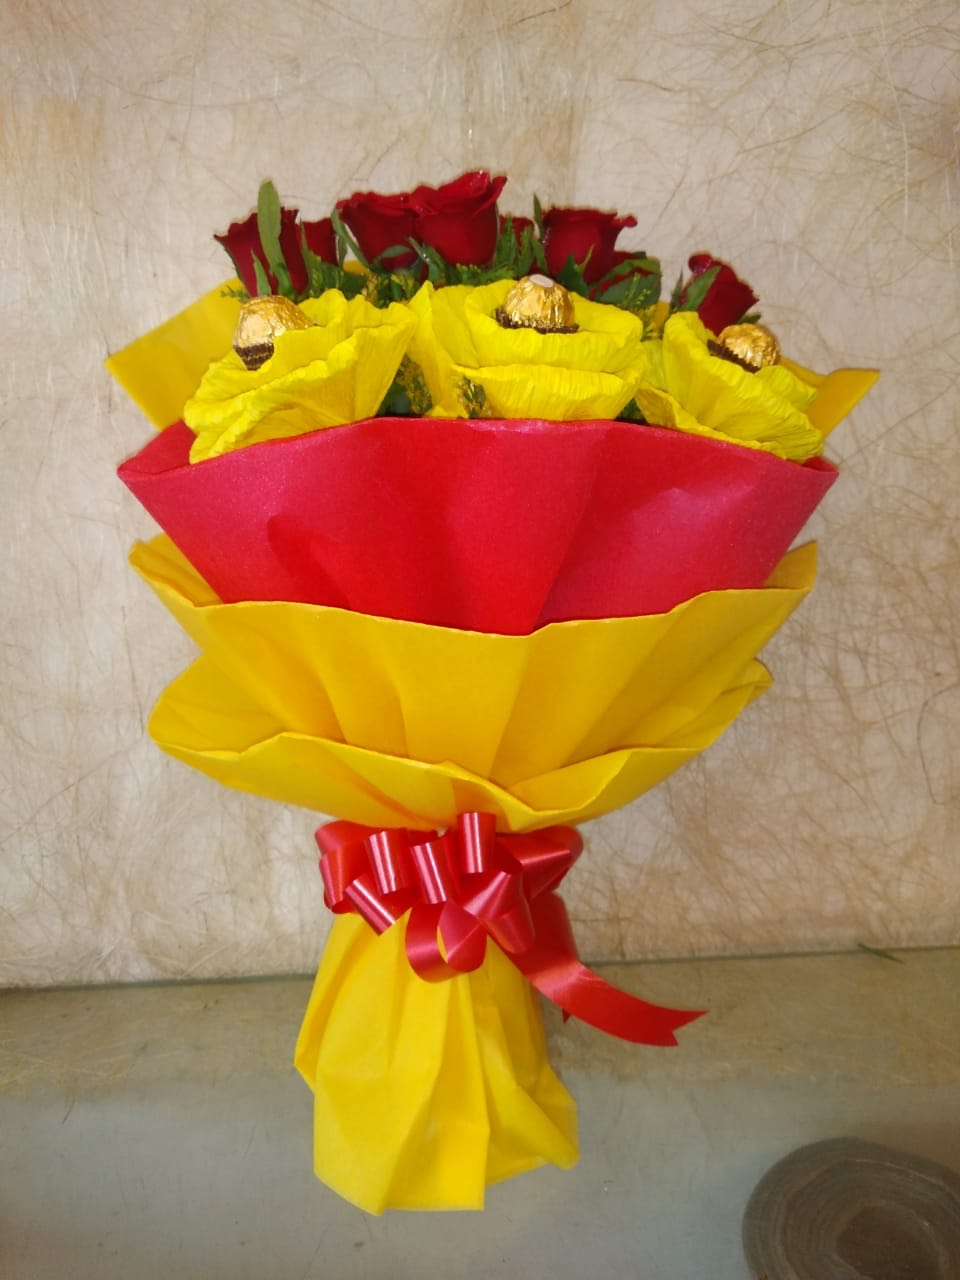 Red Roses Ferrero Rocher Bunch